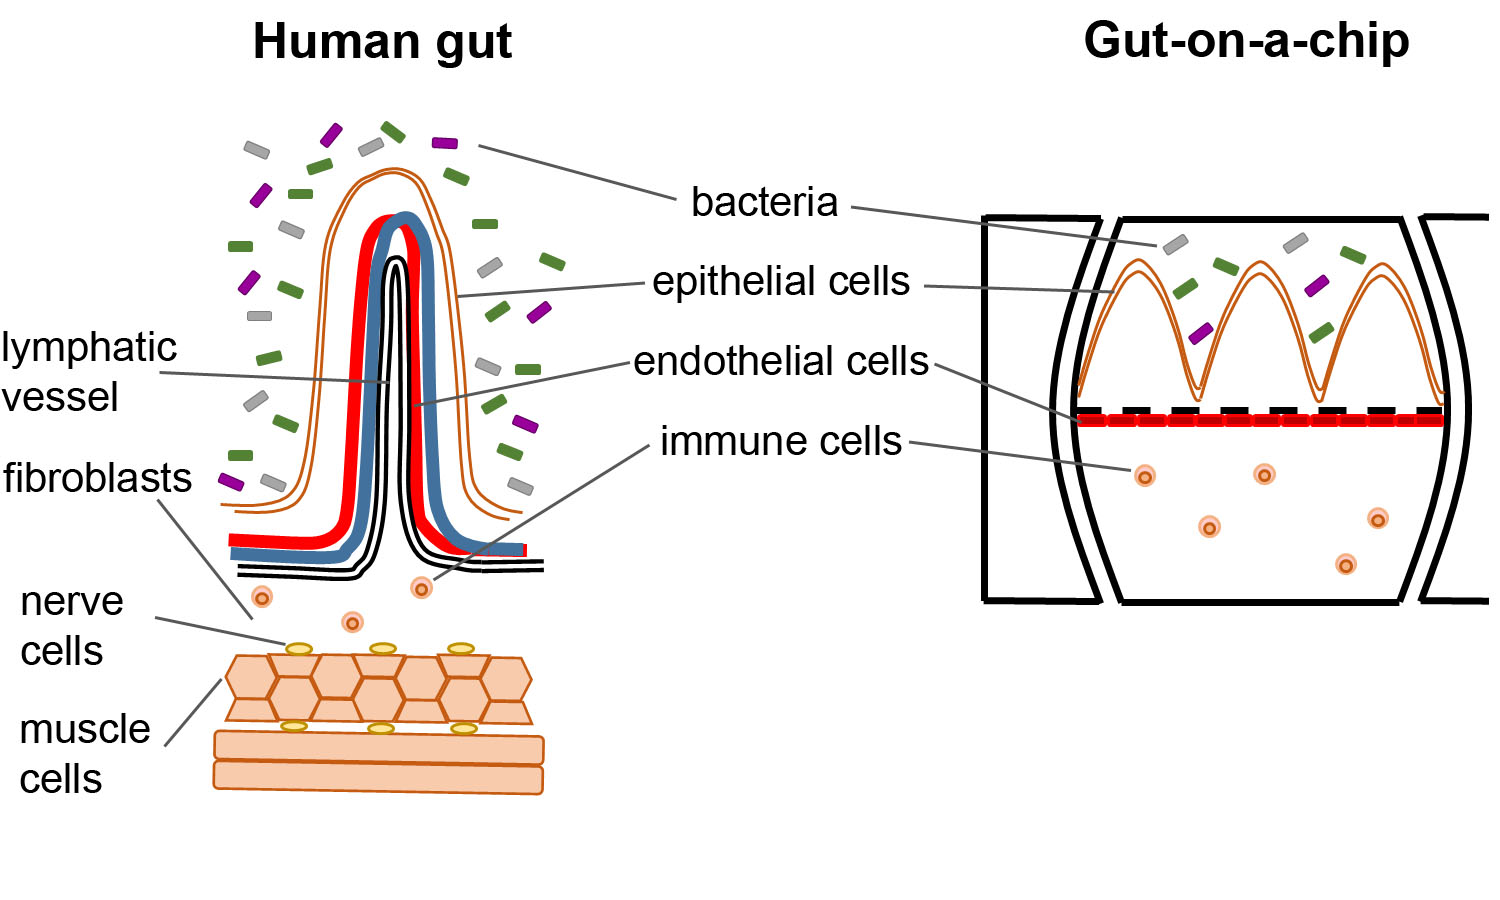 How close does a gut-on-a-chip resemble our gut?